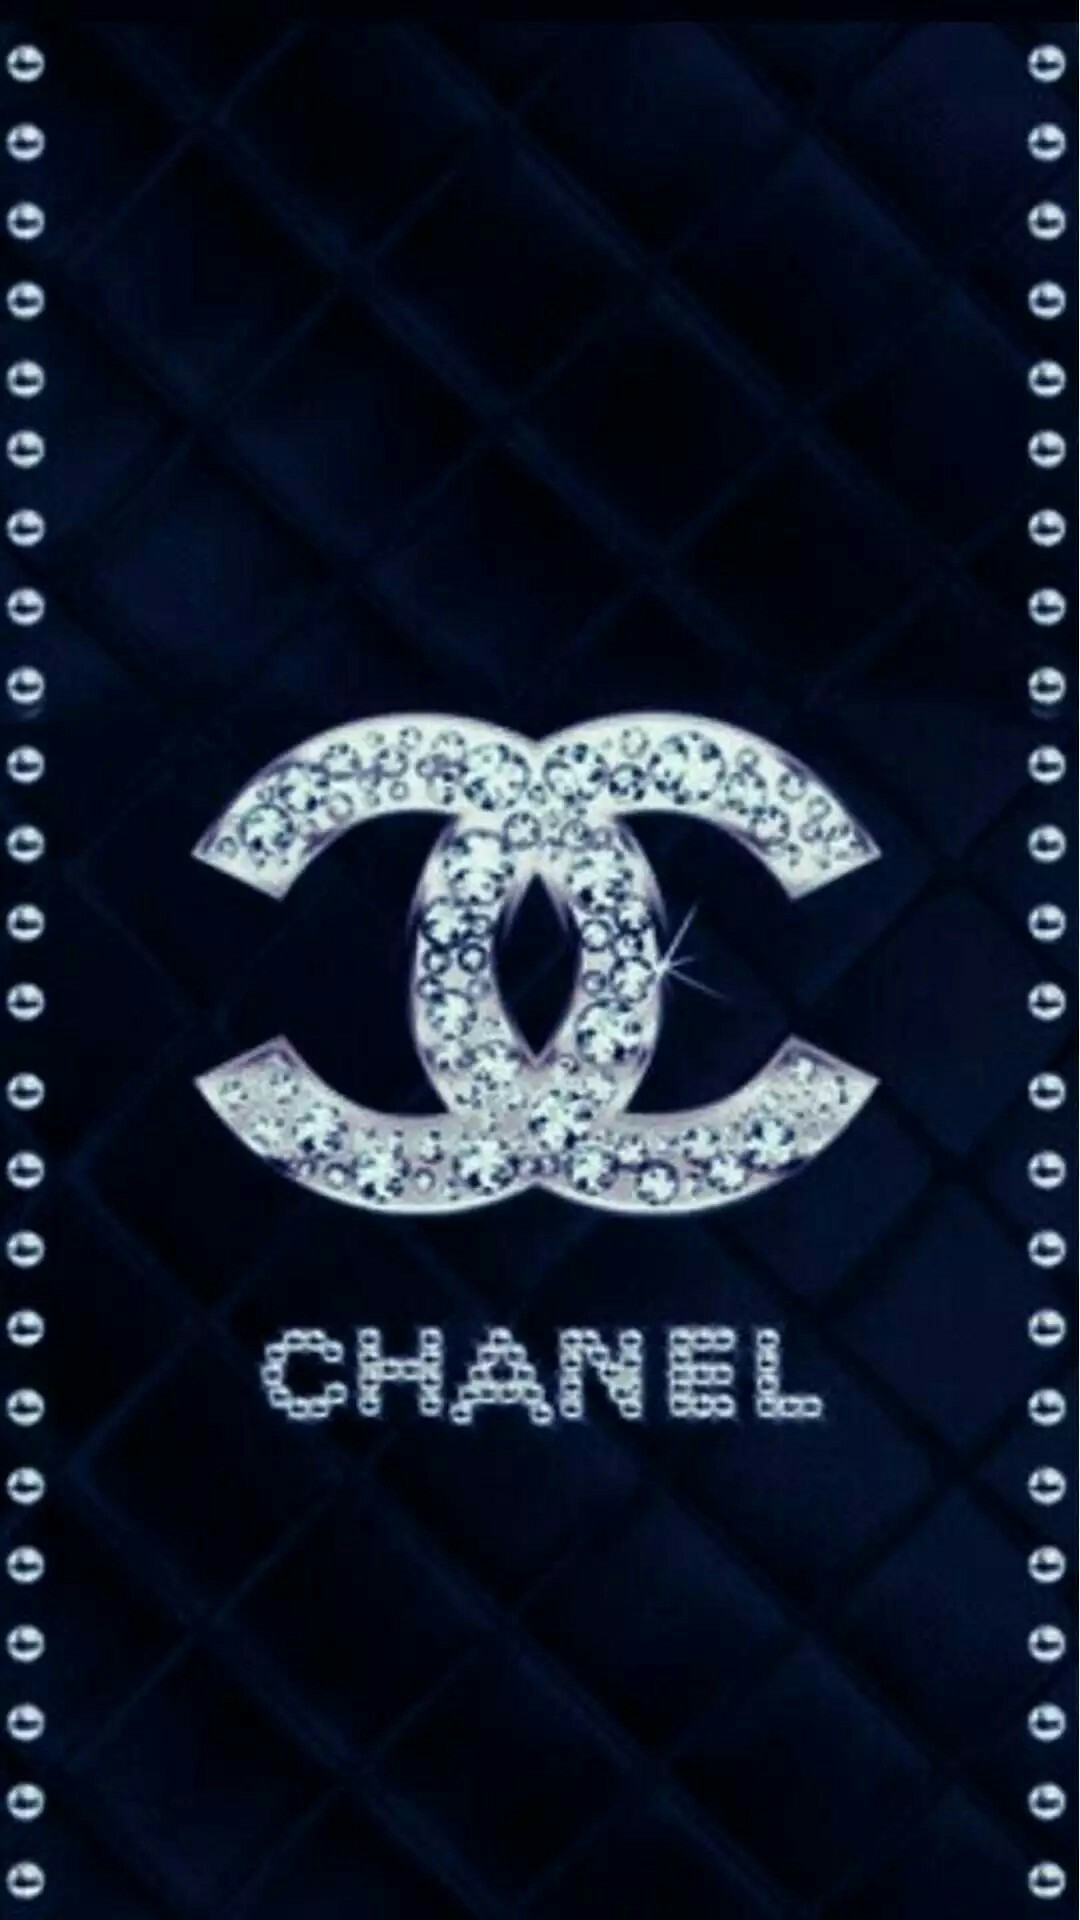 Chanel Wallpaper For Iphone 6 Plus The Art Of Mike Mignola